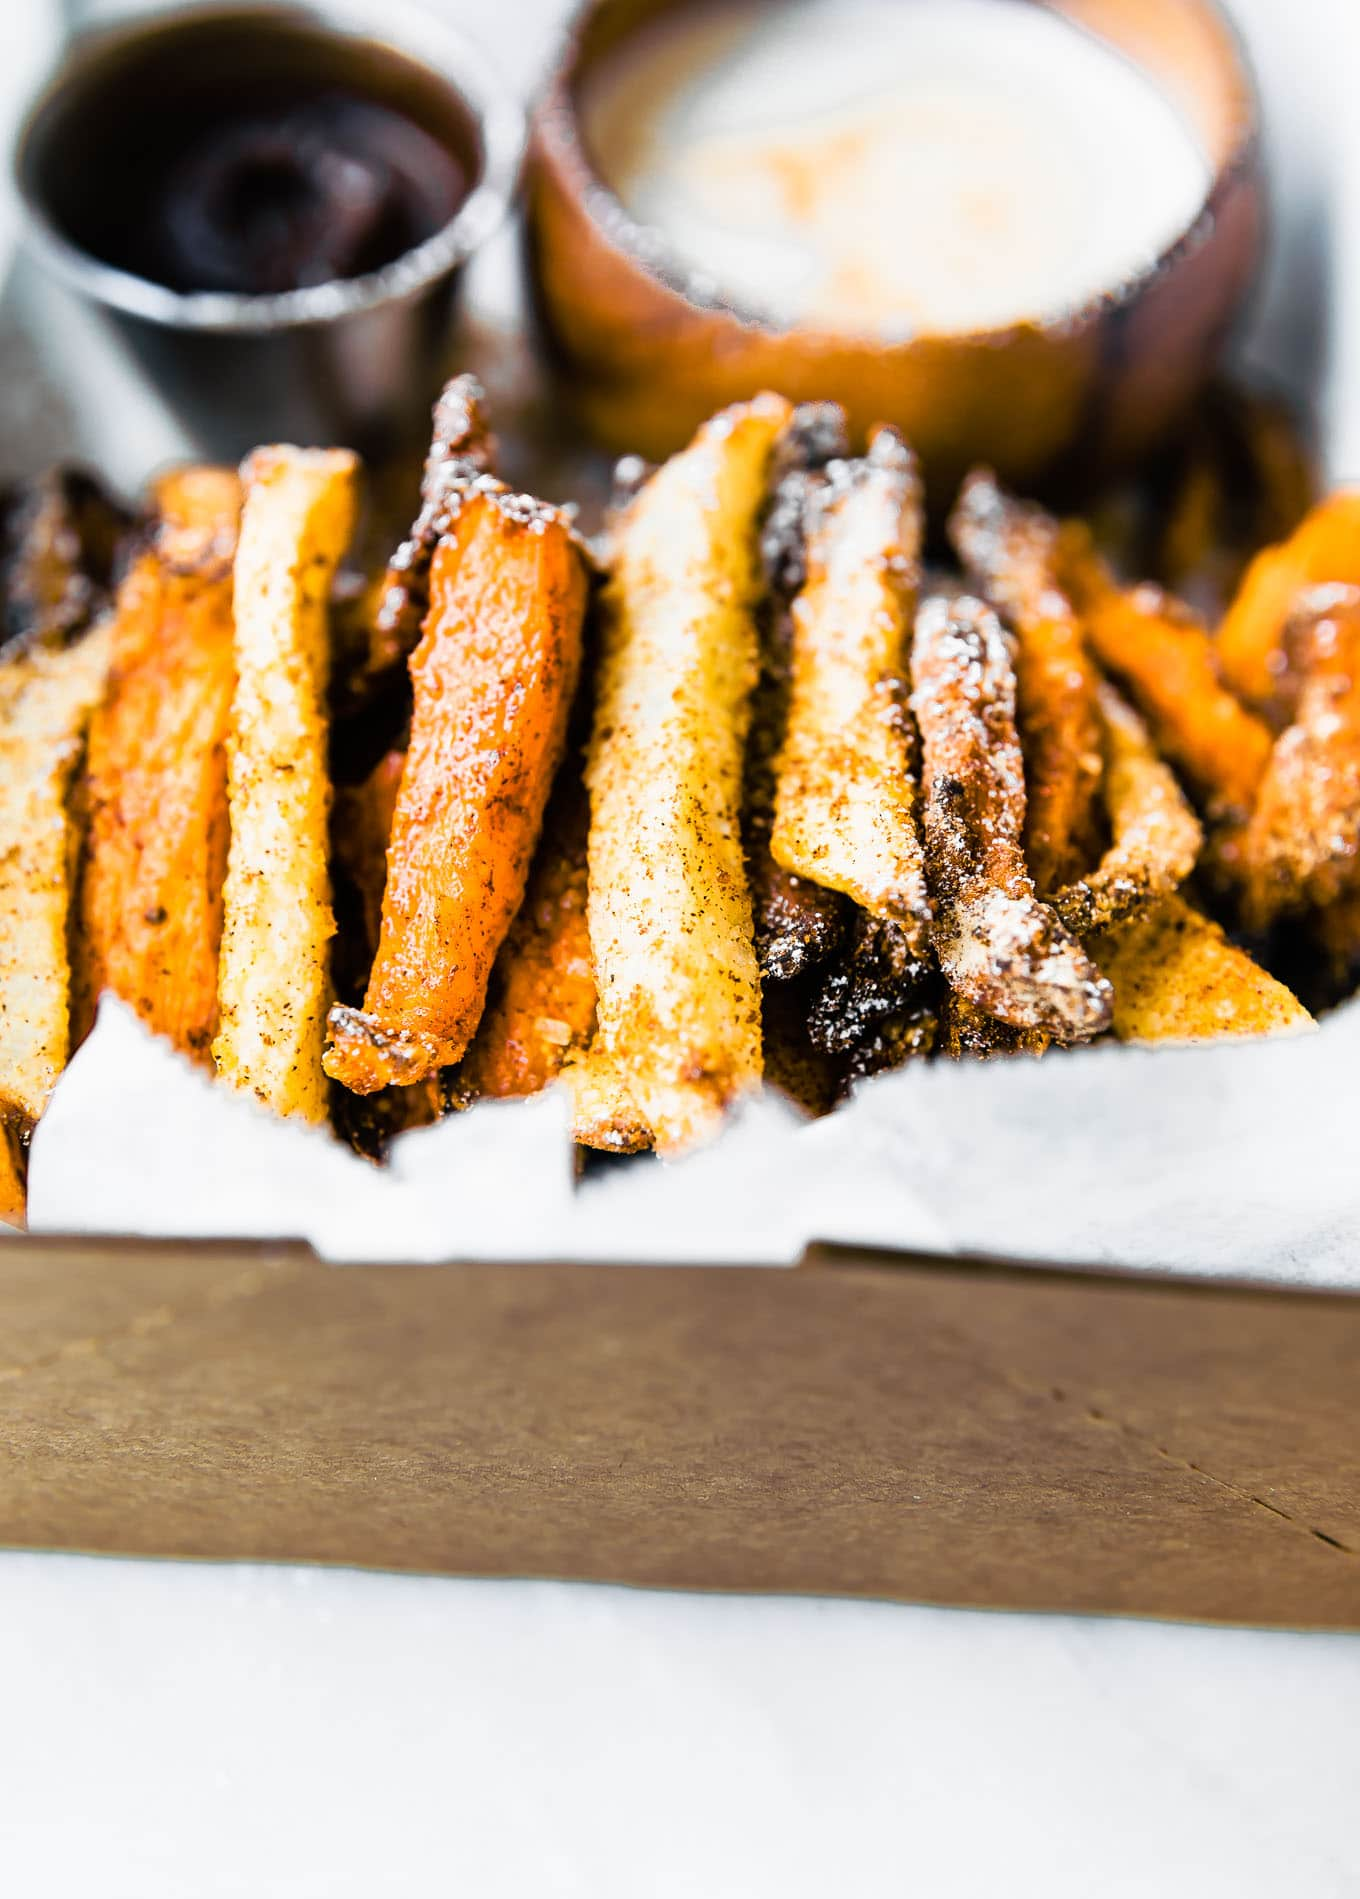 Air Fried Sweet Potato Dessert Fries!This healthier, refined sugar free dessert recipe is made with sweet potatoes that have a sweet cinnamon coating. Gluten free with vegan, dairy free, and low carb options. Oven baked option as well.